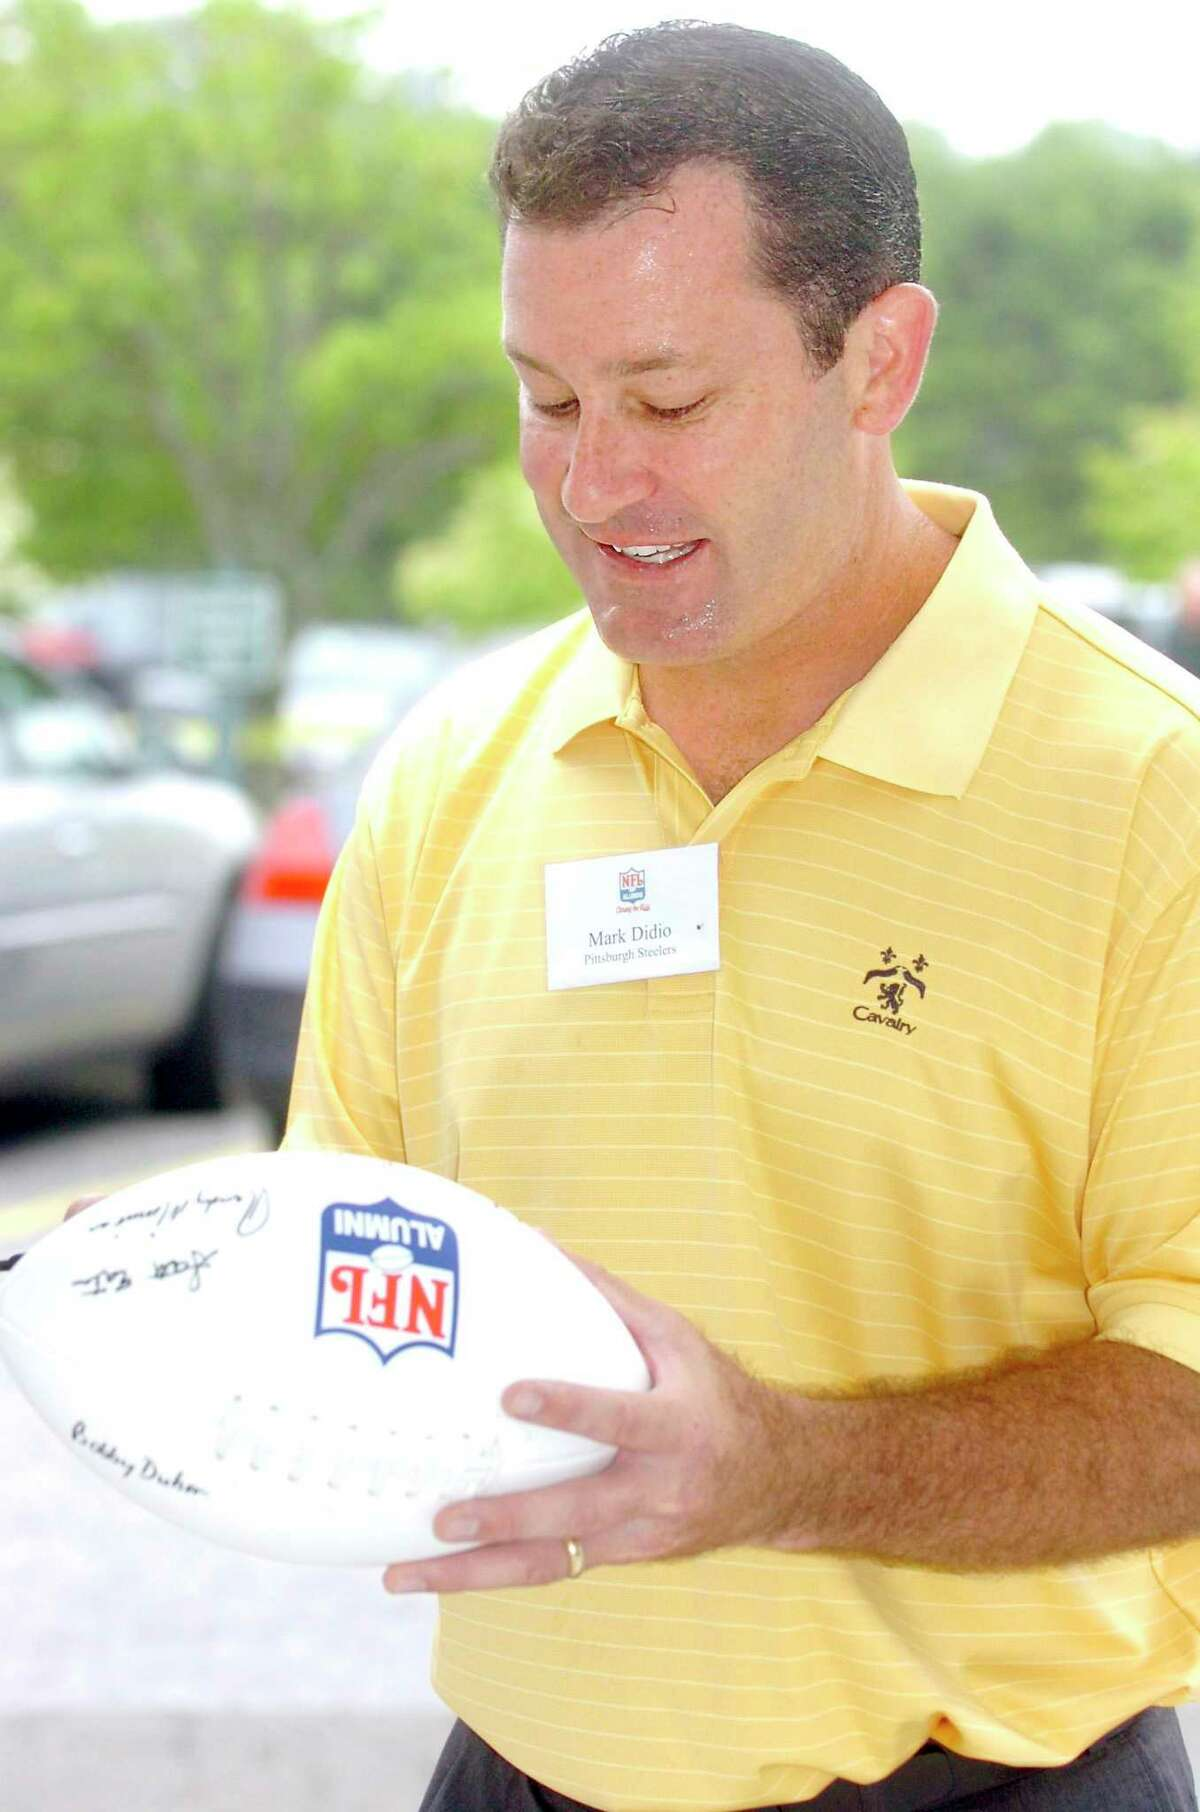 Darien_062308_Mark Didio, Pittsburgh Steelers, signs footballs at the NFL Alumni Charity Golf Tournament at the Country Club of Darien. Helen Neafsey/staff photo